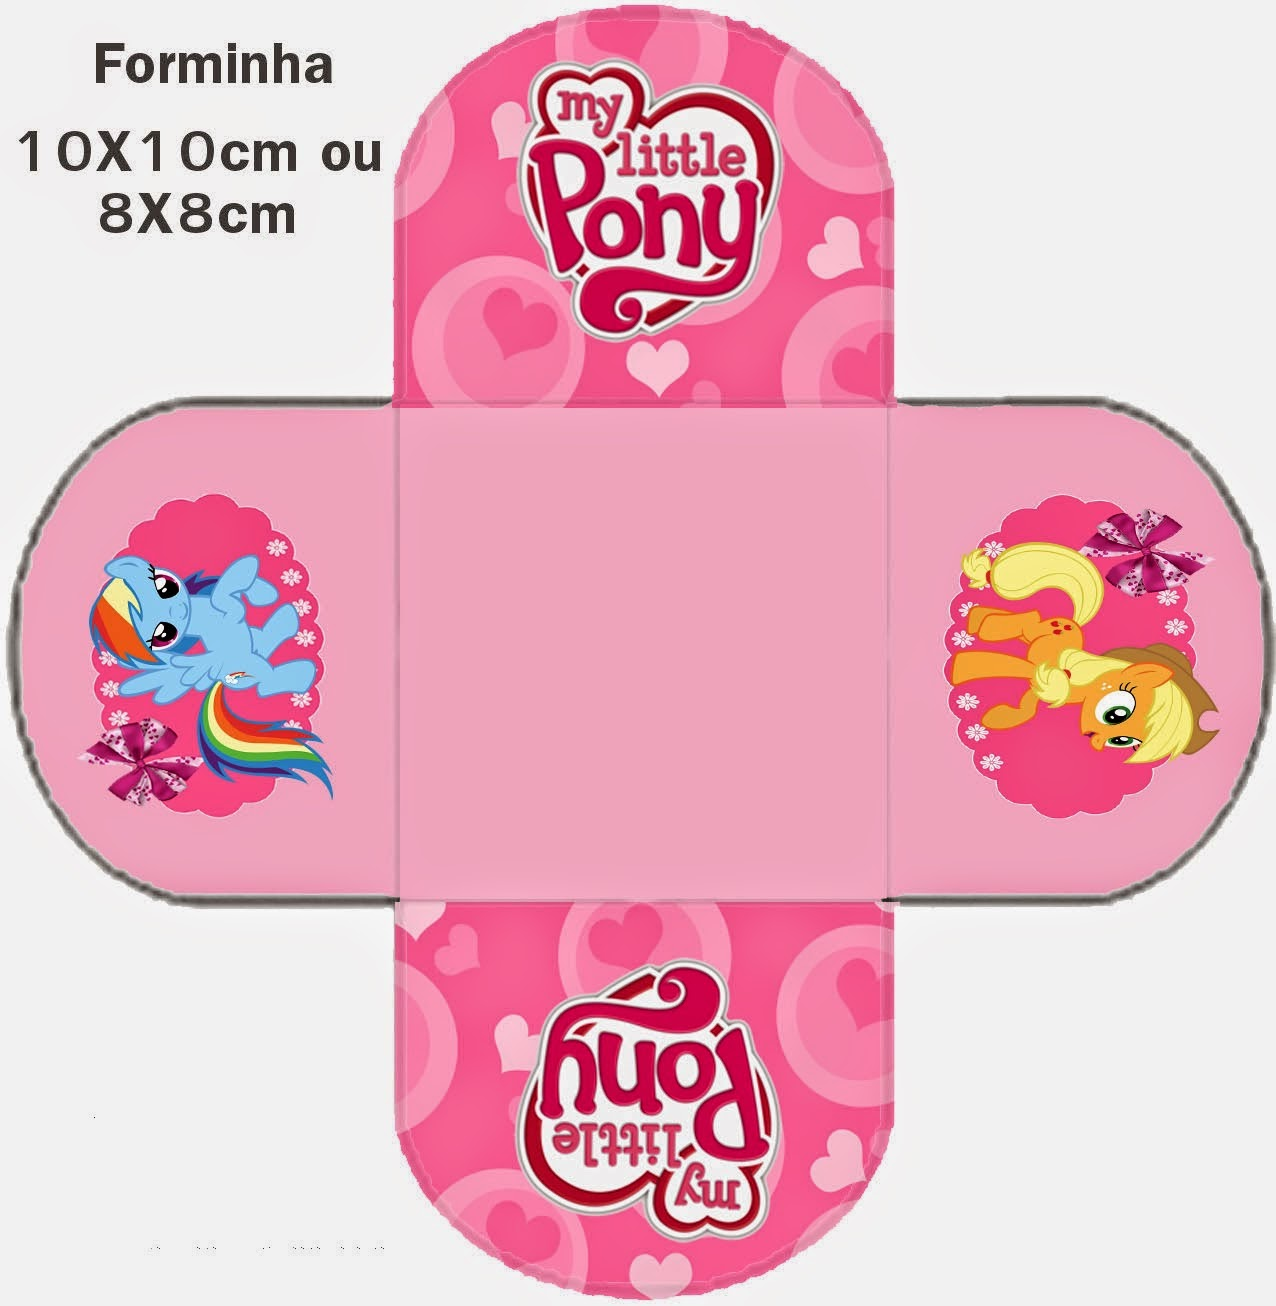 My little pony colouring table - My Little Pony Free Printable Kit